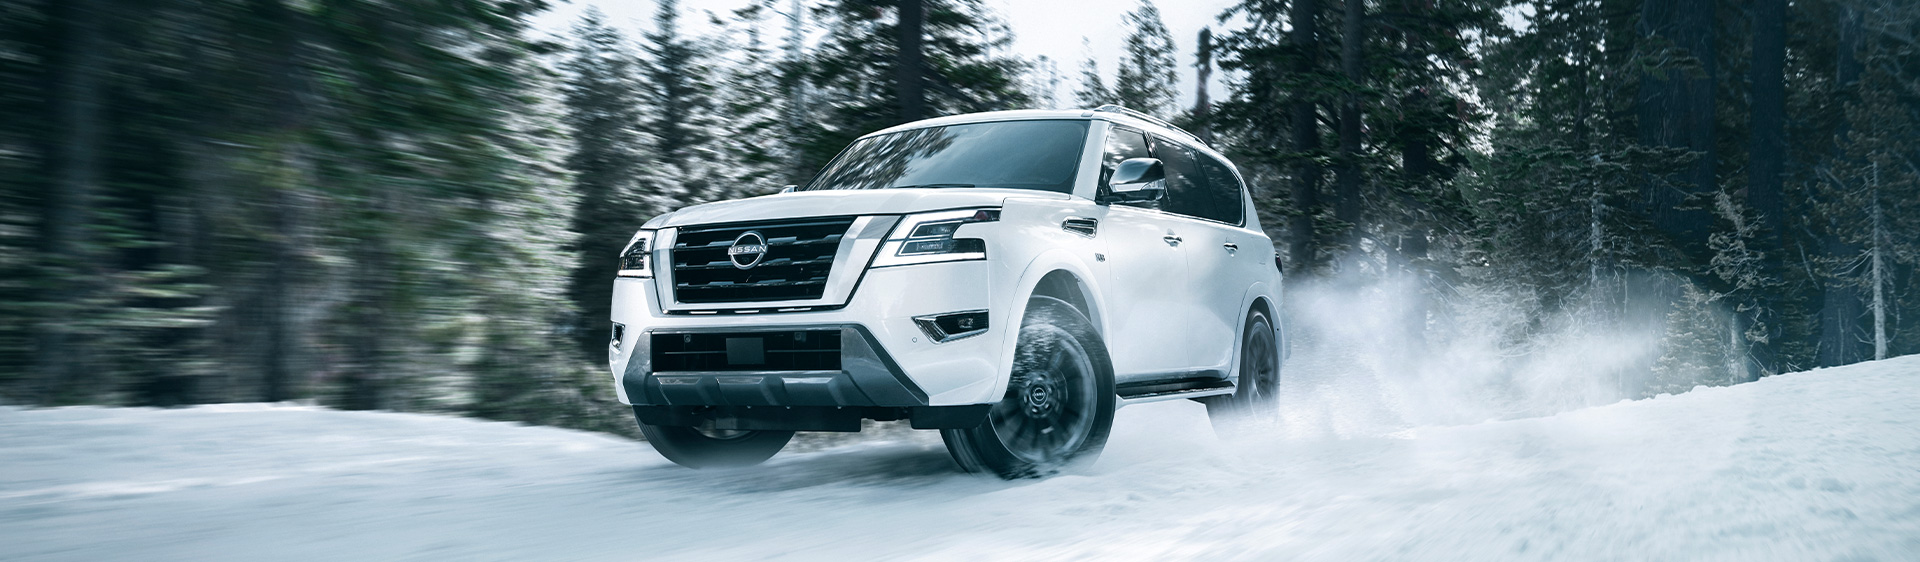 Introducing the All-New 2022 Nissan Frontier